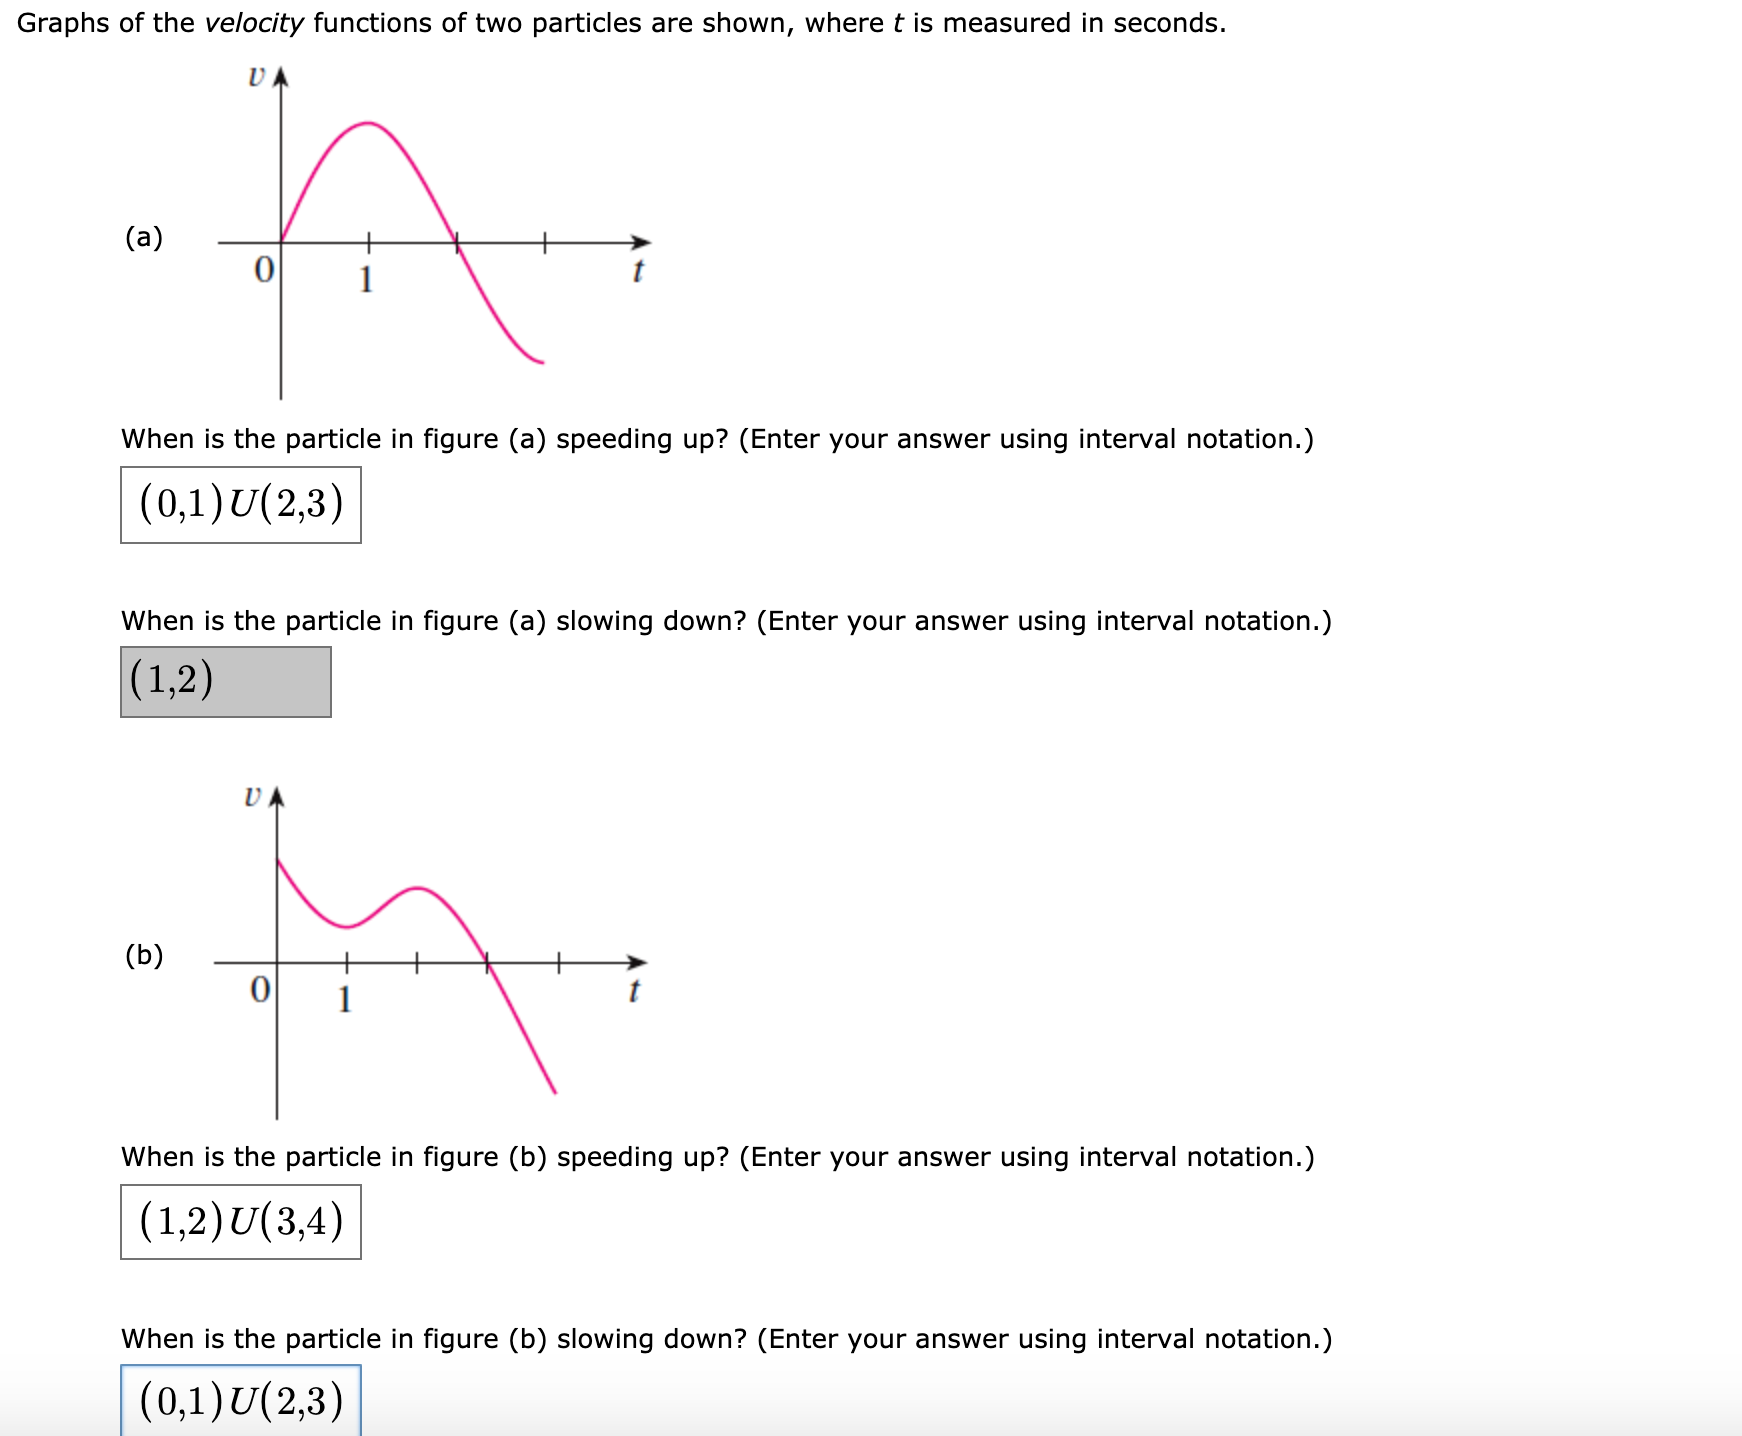 Graphs of the velocity functions of two particles are shown, where t is measured in seconds. (a) When is the particle in figure (a) speeding up? (Enter your answer using interval notation.) (0,1)U(2,3) When is the particle in figure (a) slowing down? (Enter your answer using interval notation.) (1,2) UA (b) When is the particle in figure (b) speeding up? (Enter your answer using interval notation.) (1,2)U(3,4) When is the particle in figure (b) slowing down? (Enter your answer using interval notation.) (0,1)U(2,3)